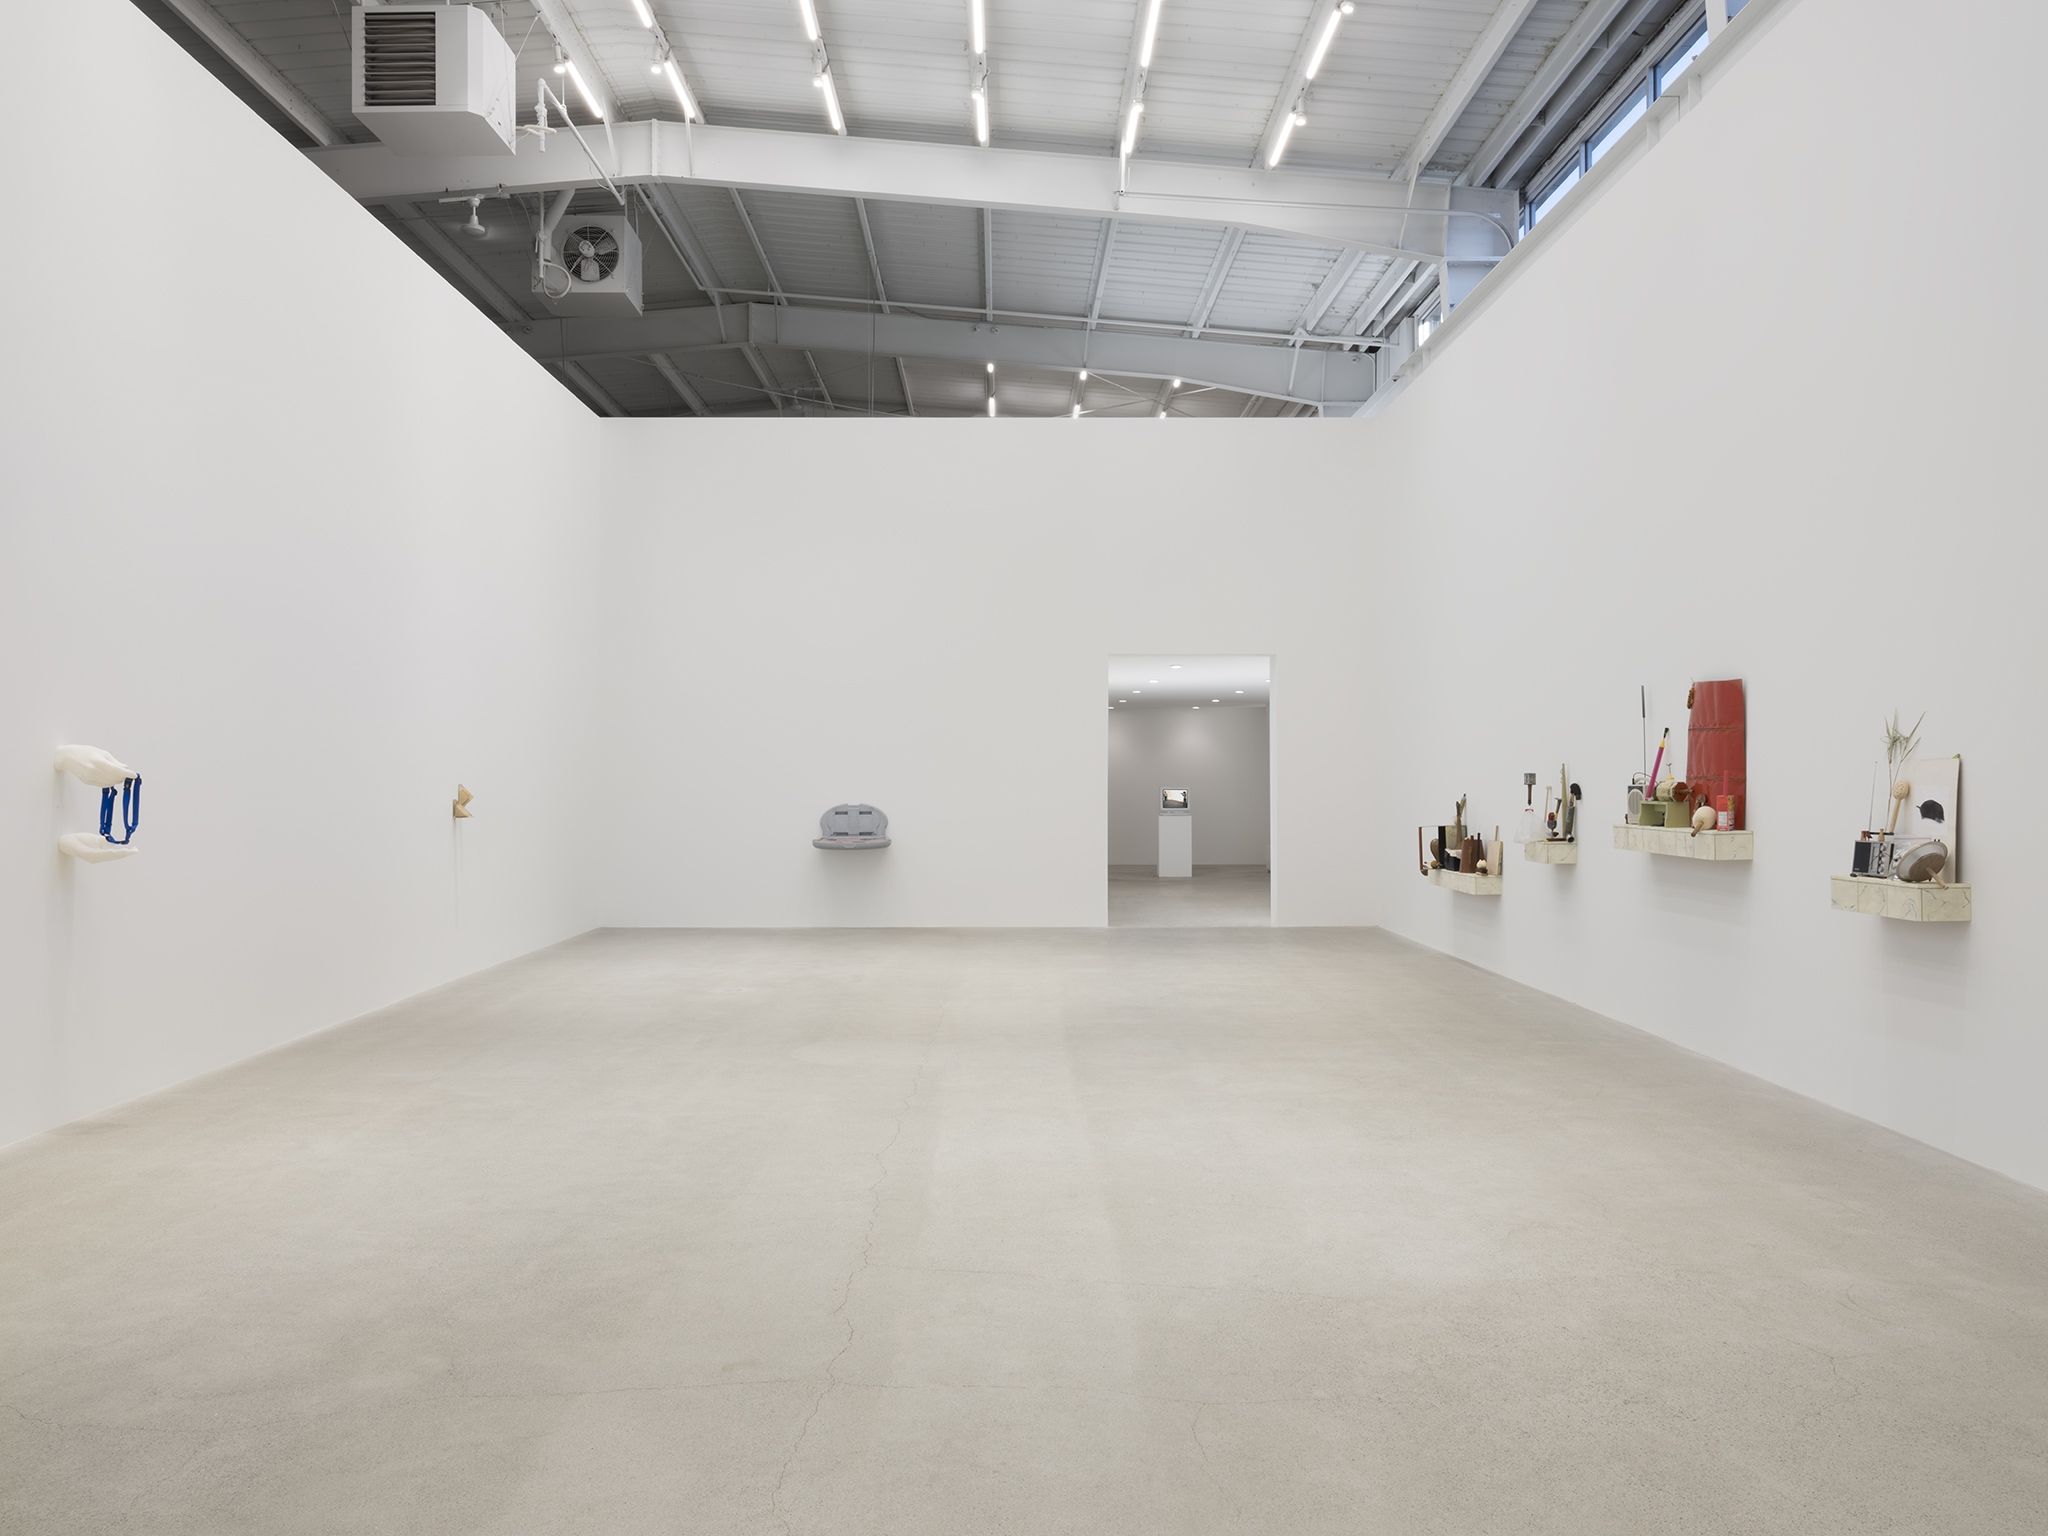 Chris Burden, Alex Frost, Myfanwy MacLeod, Nicole Wermers, installation view, Unexplained Parade, Catriona Jeffries, Vancouver, March 27, 2019 by